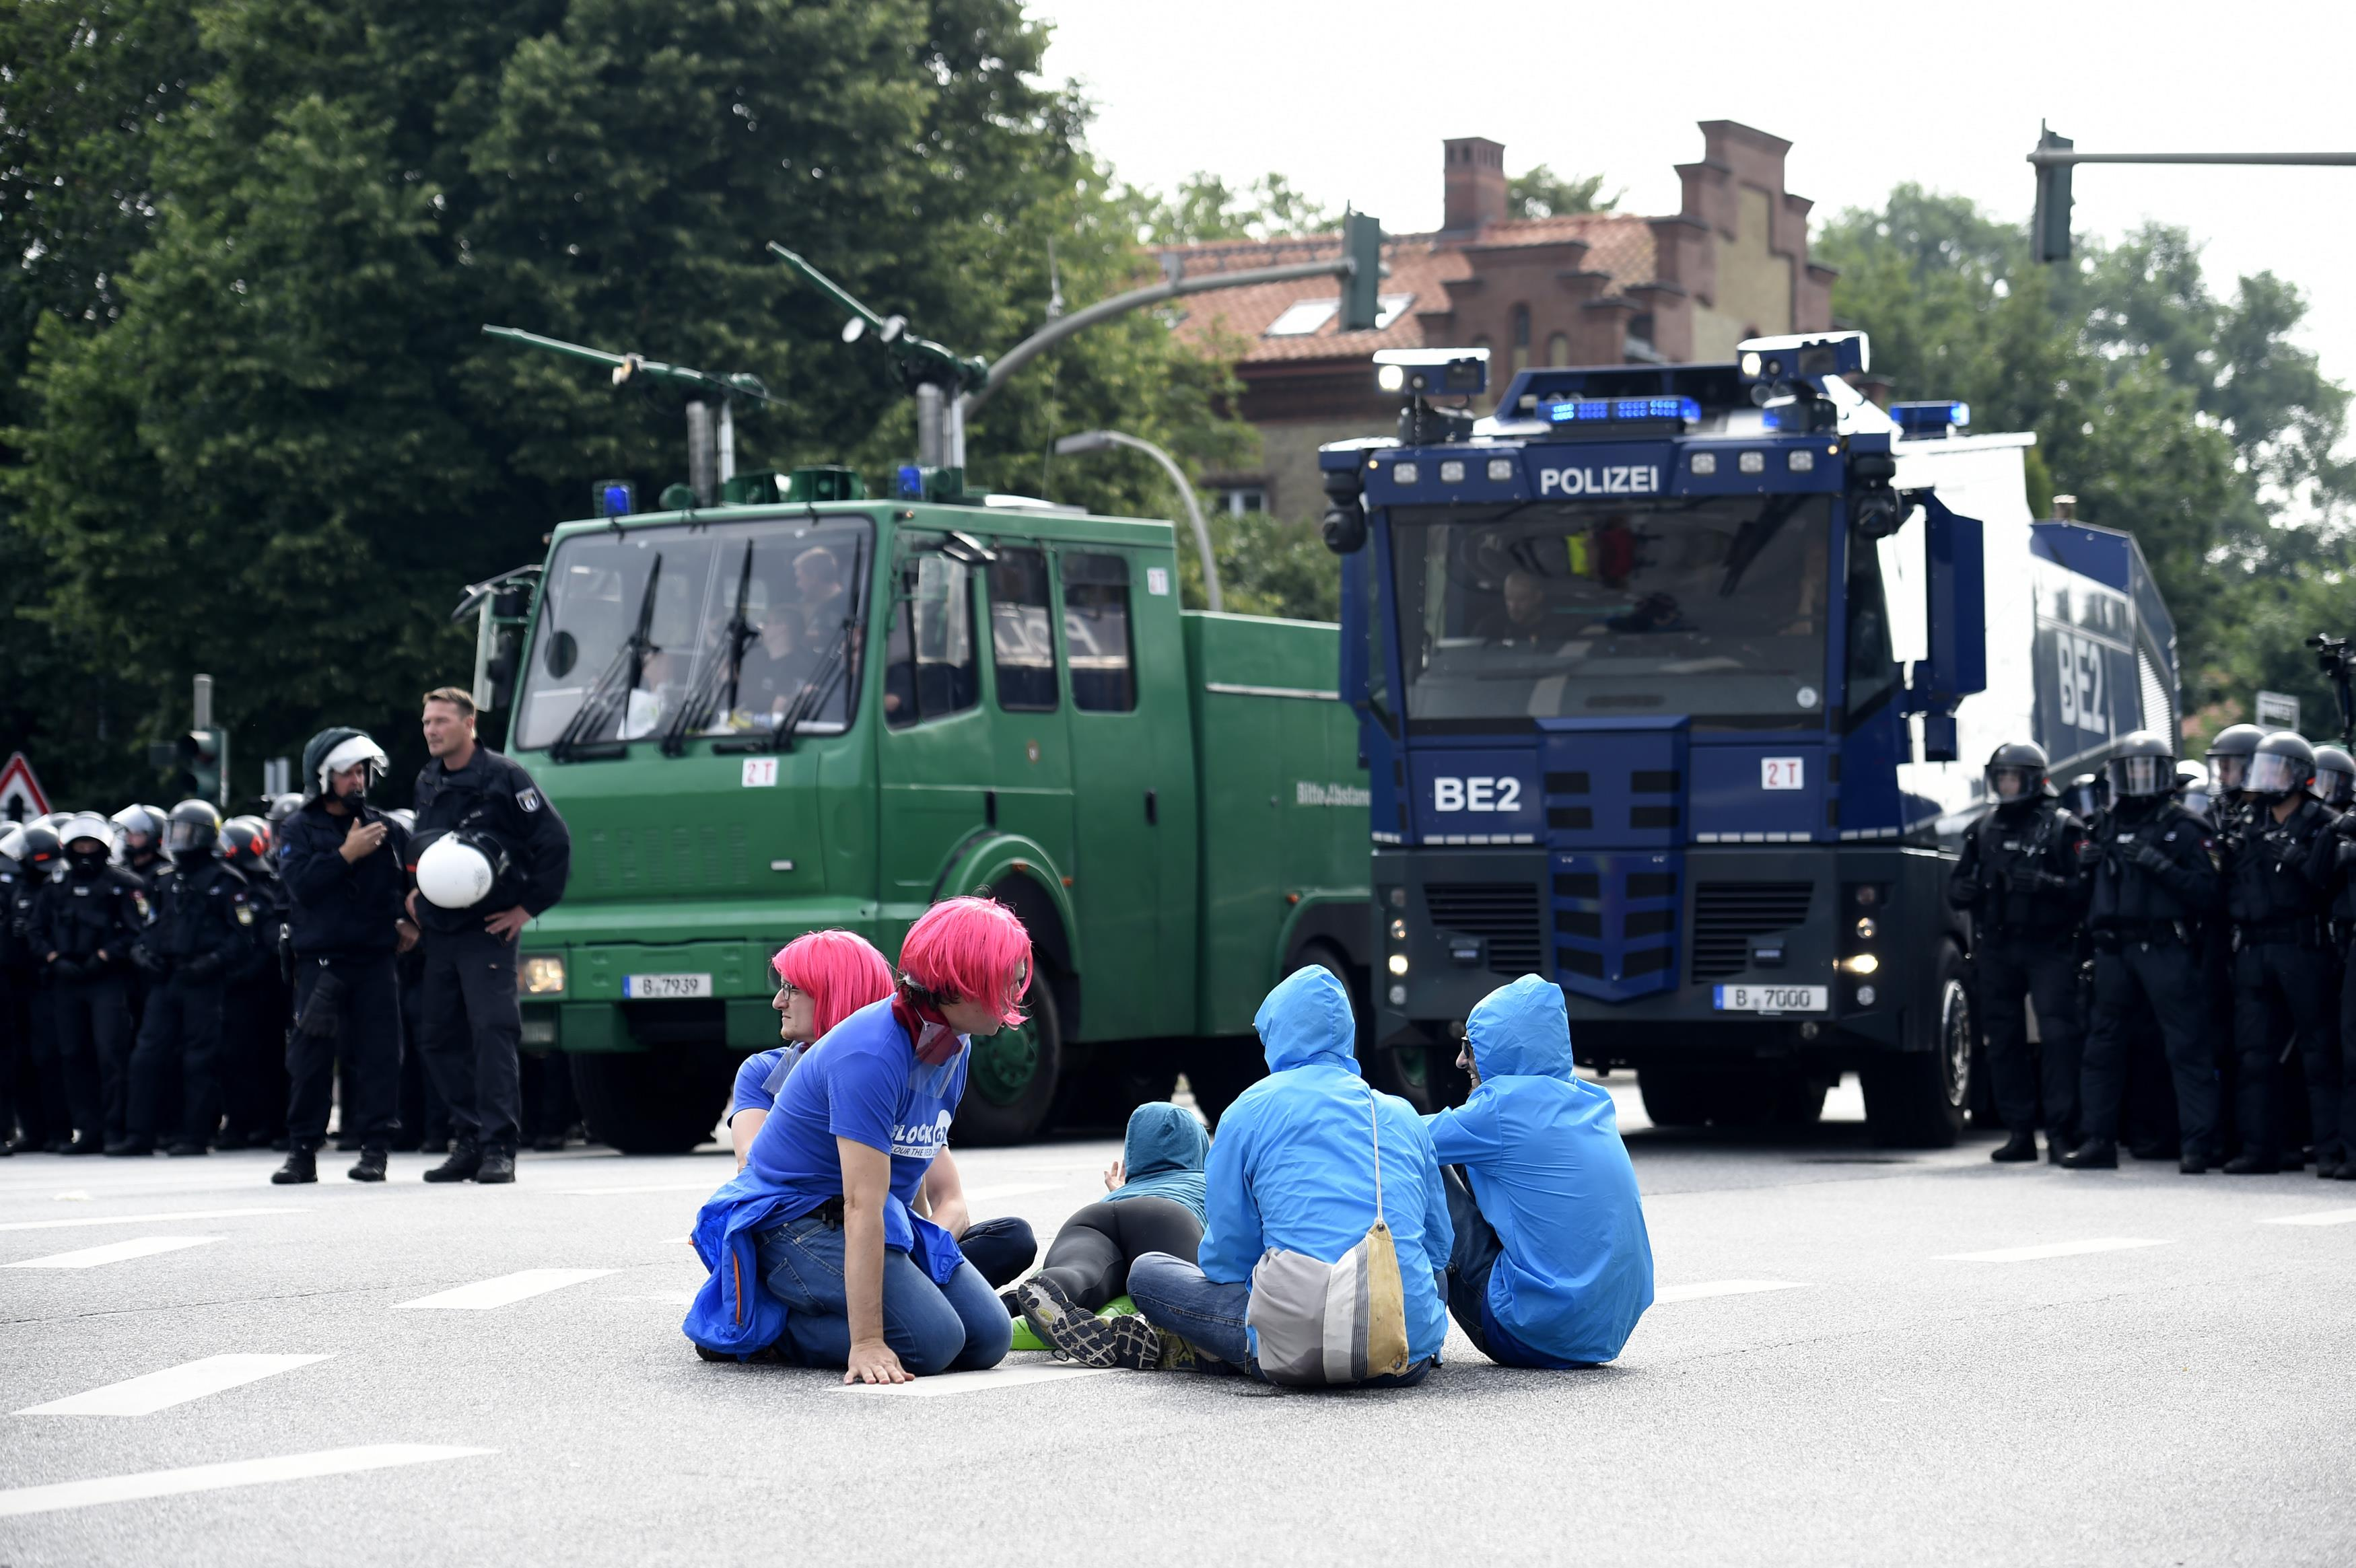 2017-07-07T095455Z 811748637 UP1ED770RJIKG RTRMADP 3 G20-GERMANY-BLOCKADES